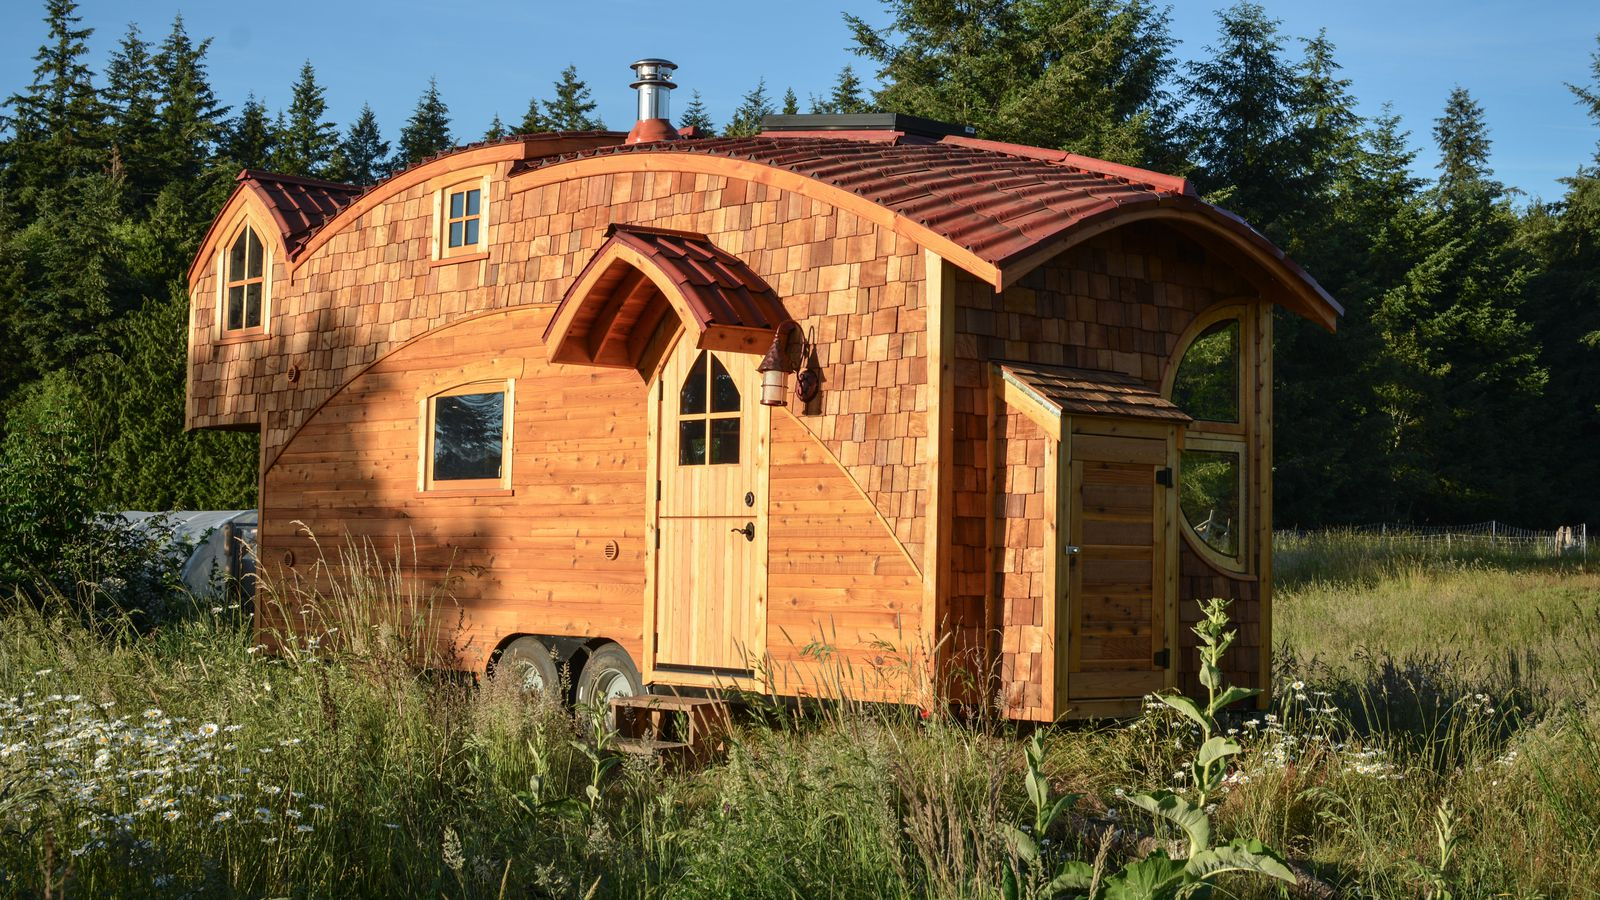 Fertighaus Nrw A Tiny House Movement Timeline - Curbed